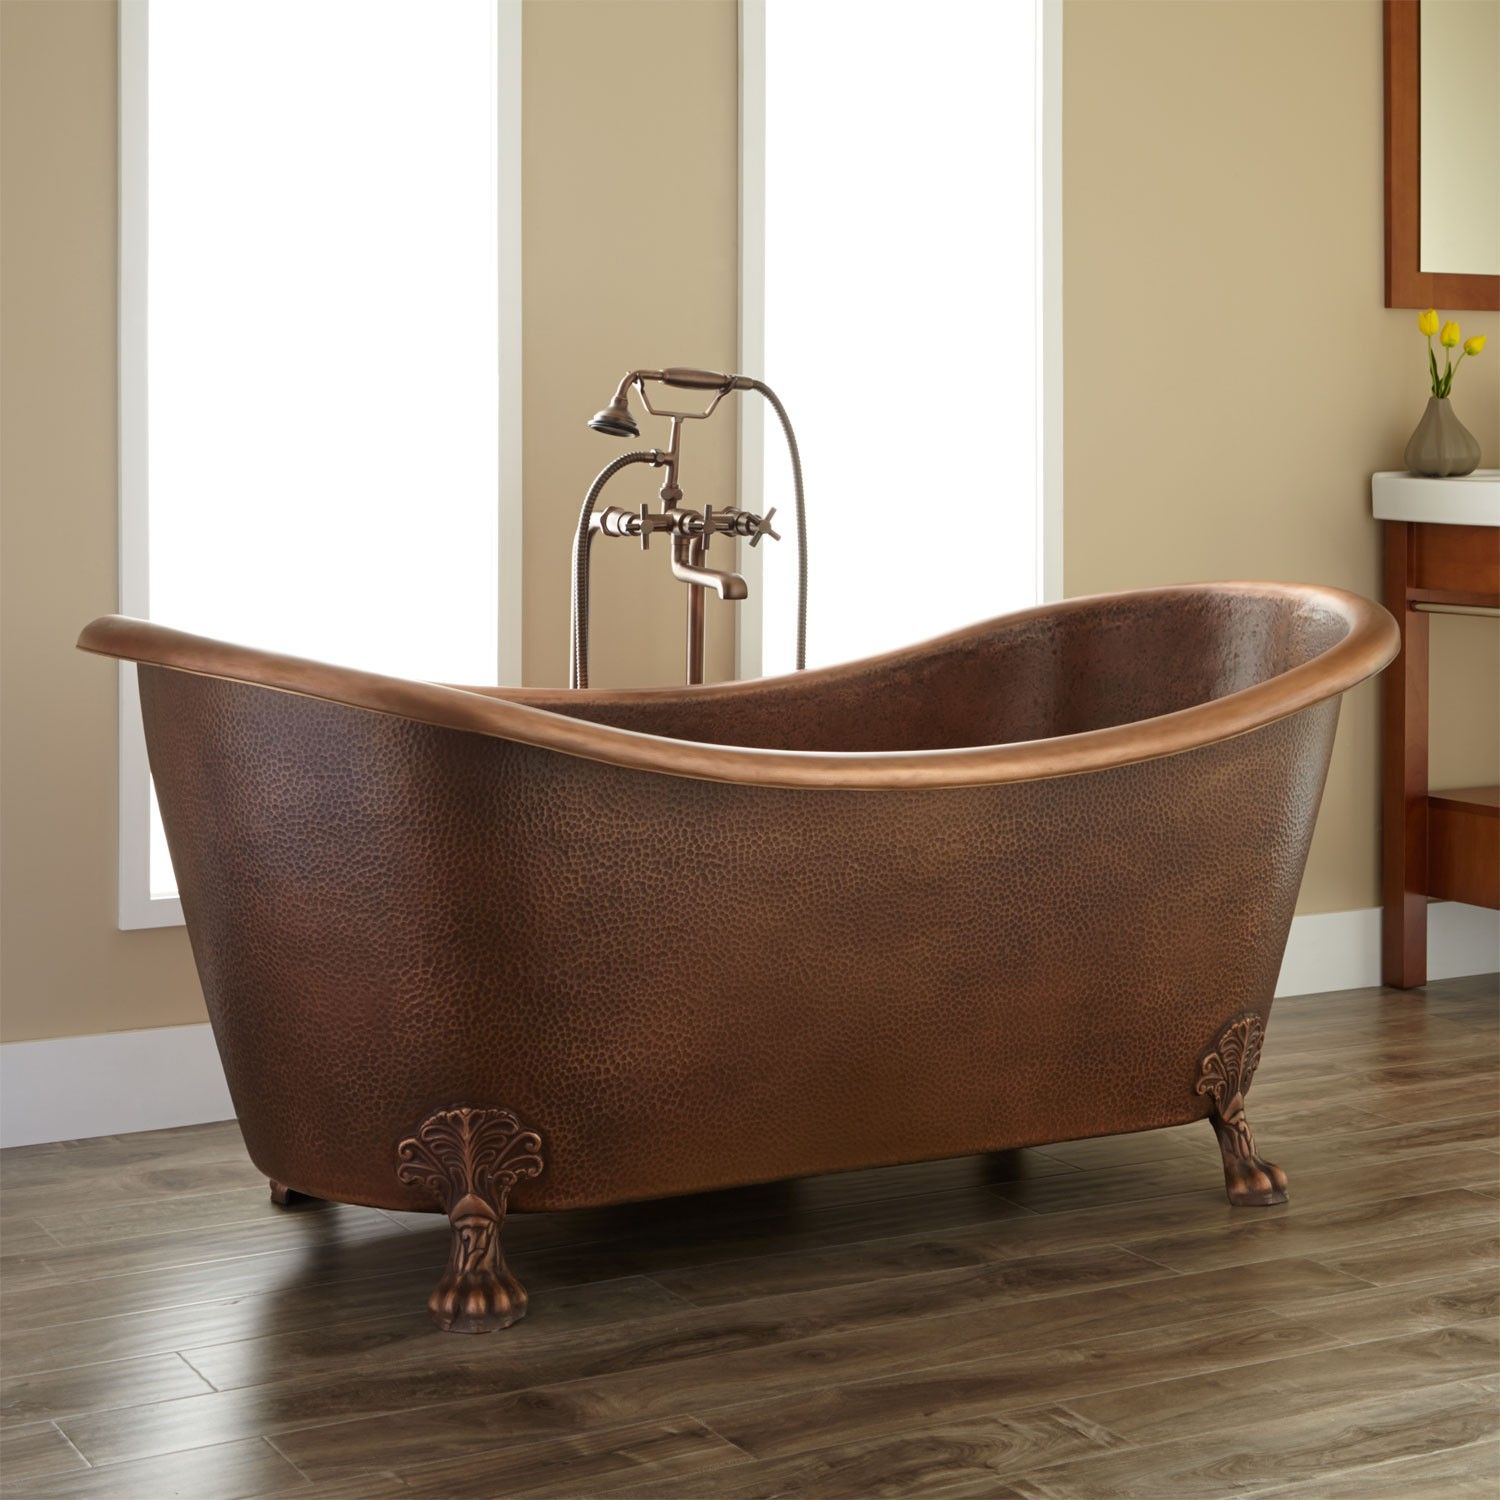 extra deep clawfoot tub. Clawfoot bathtub Isabella Copper Double Slipper Tub  Tubs Bathtubs and